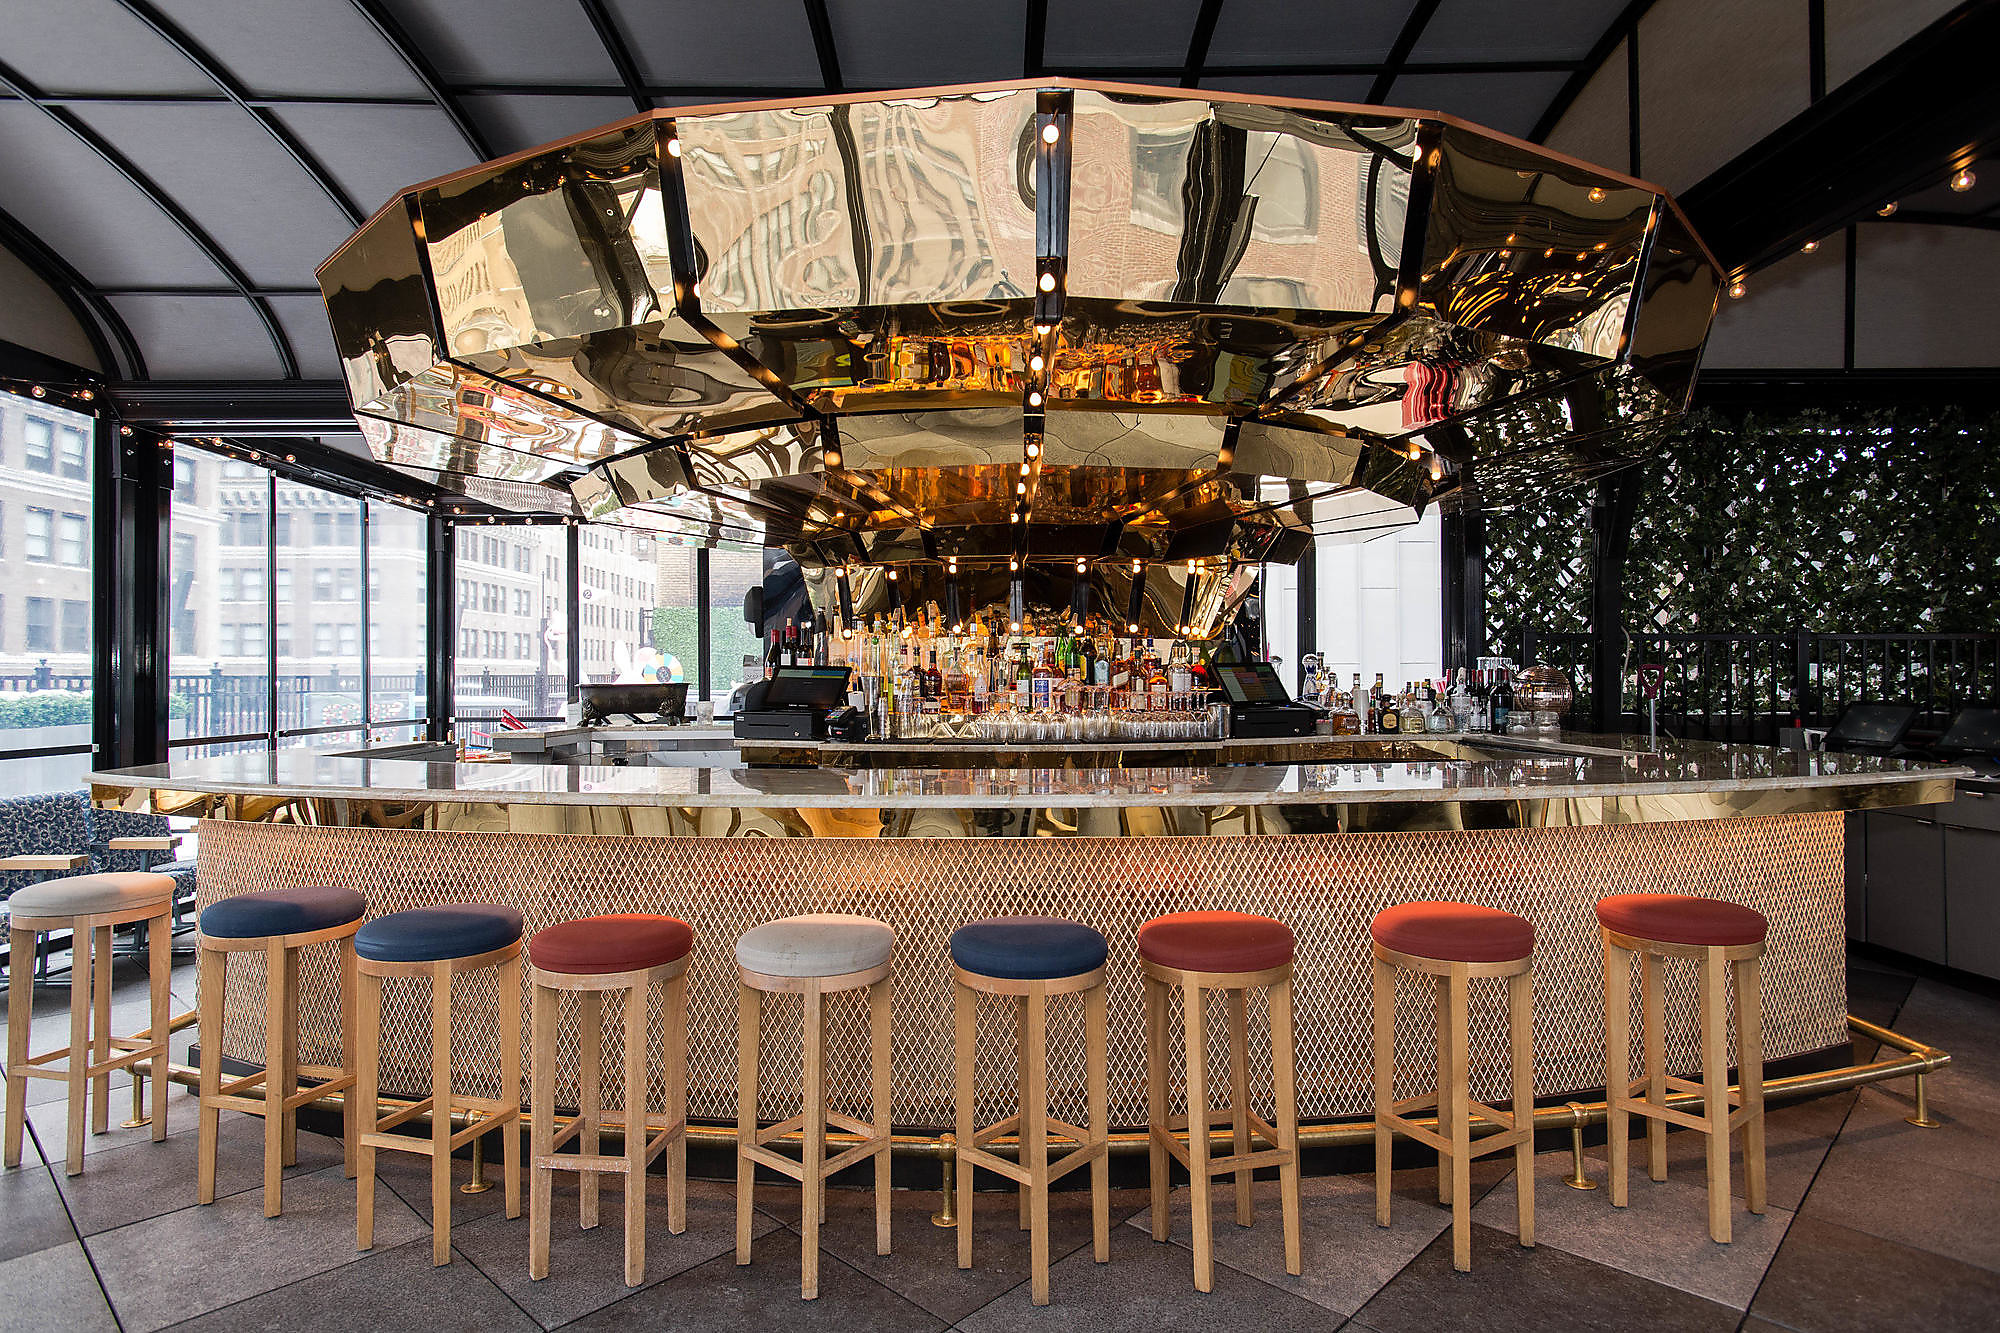 The rooftop bar at Moxy NYC Times Square.